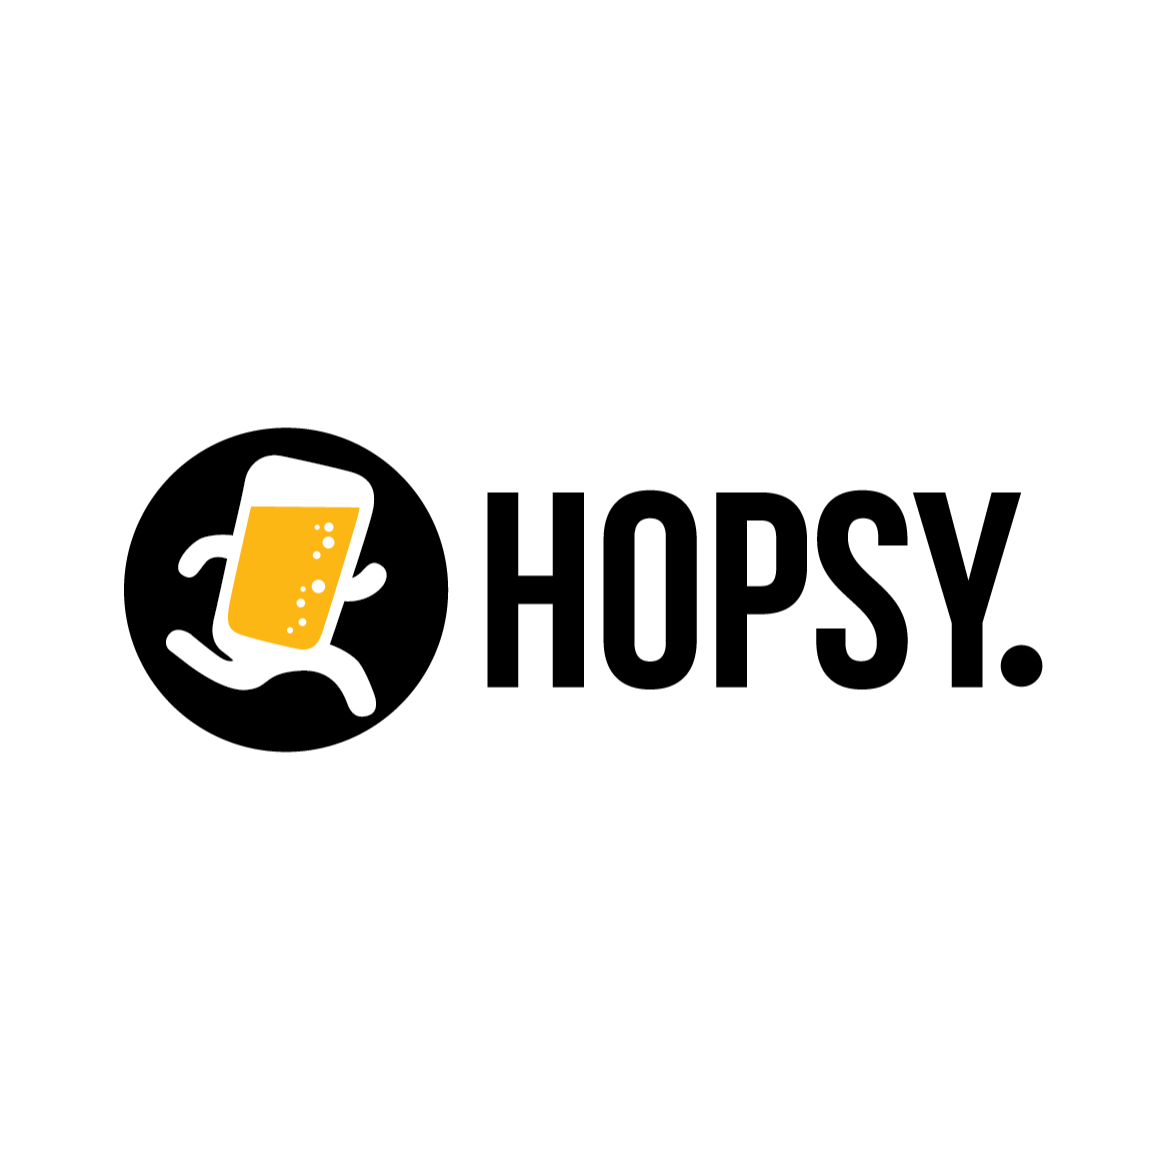 Hopsy Beer coupons and codes